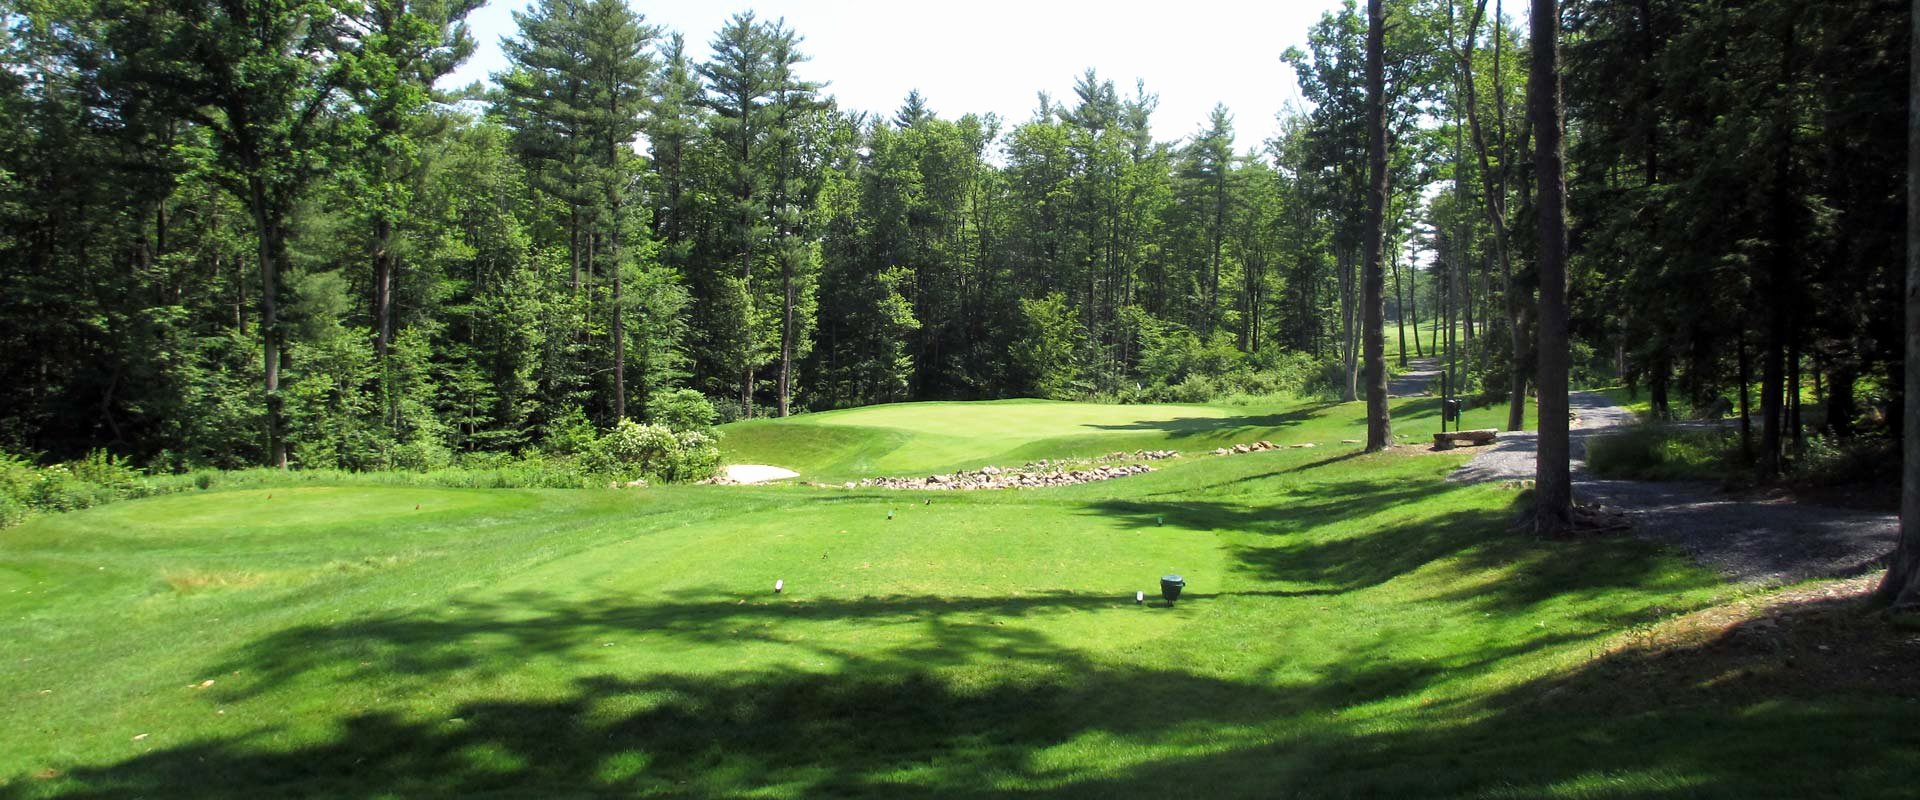 Golf Practice Schedule Template Awesome Skytop Mountain Golf Club Public Championship Course